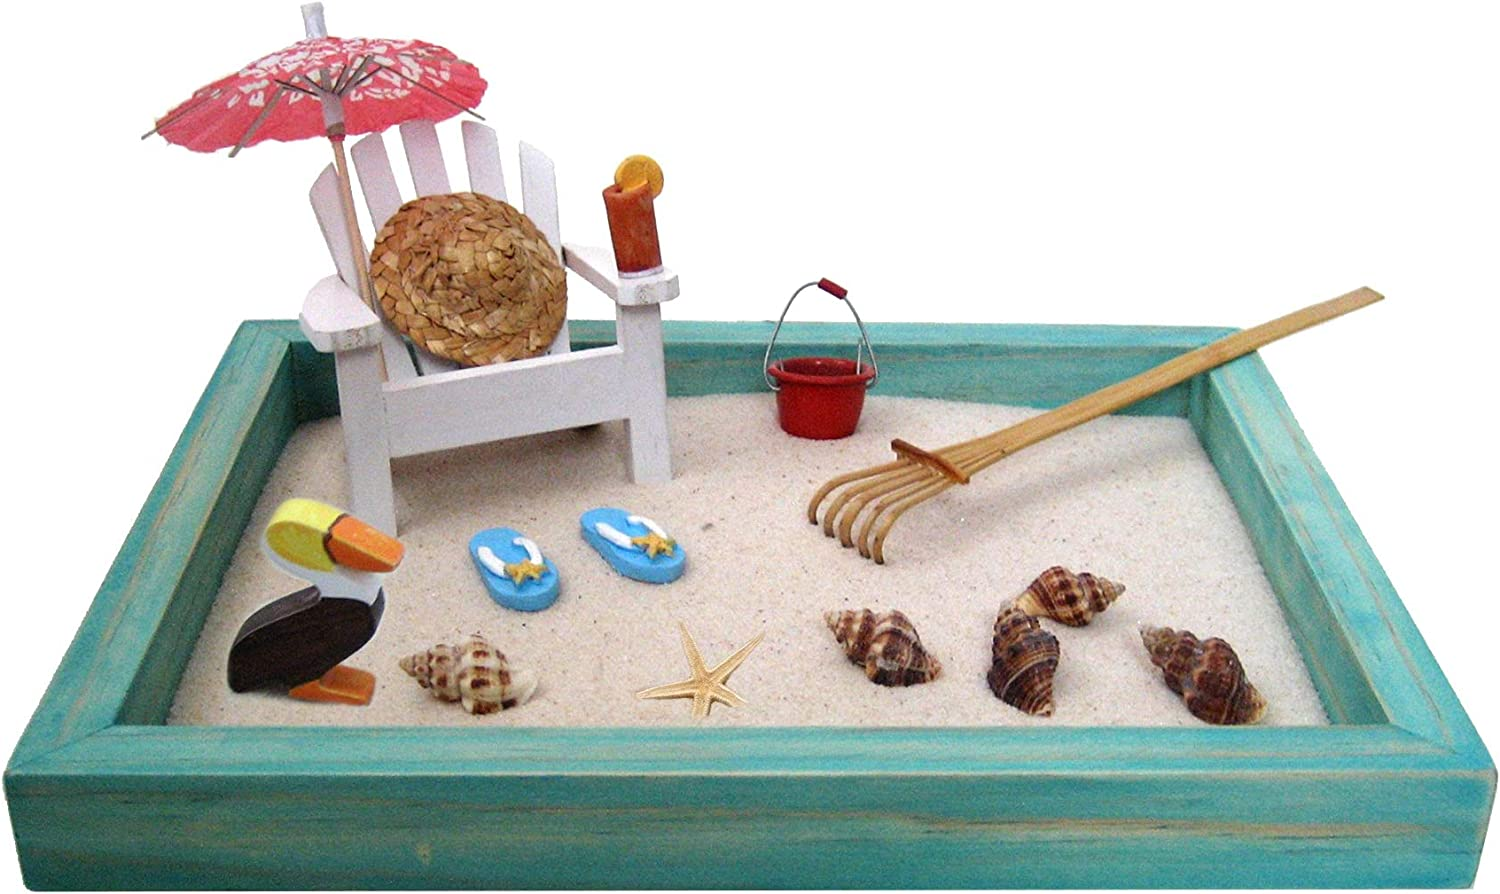 Mini Beach Zen Garden for Relaxation and Meditation, Tropical Island Getaway Escape at Your Desk